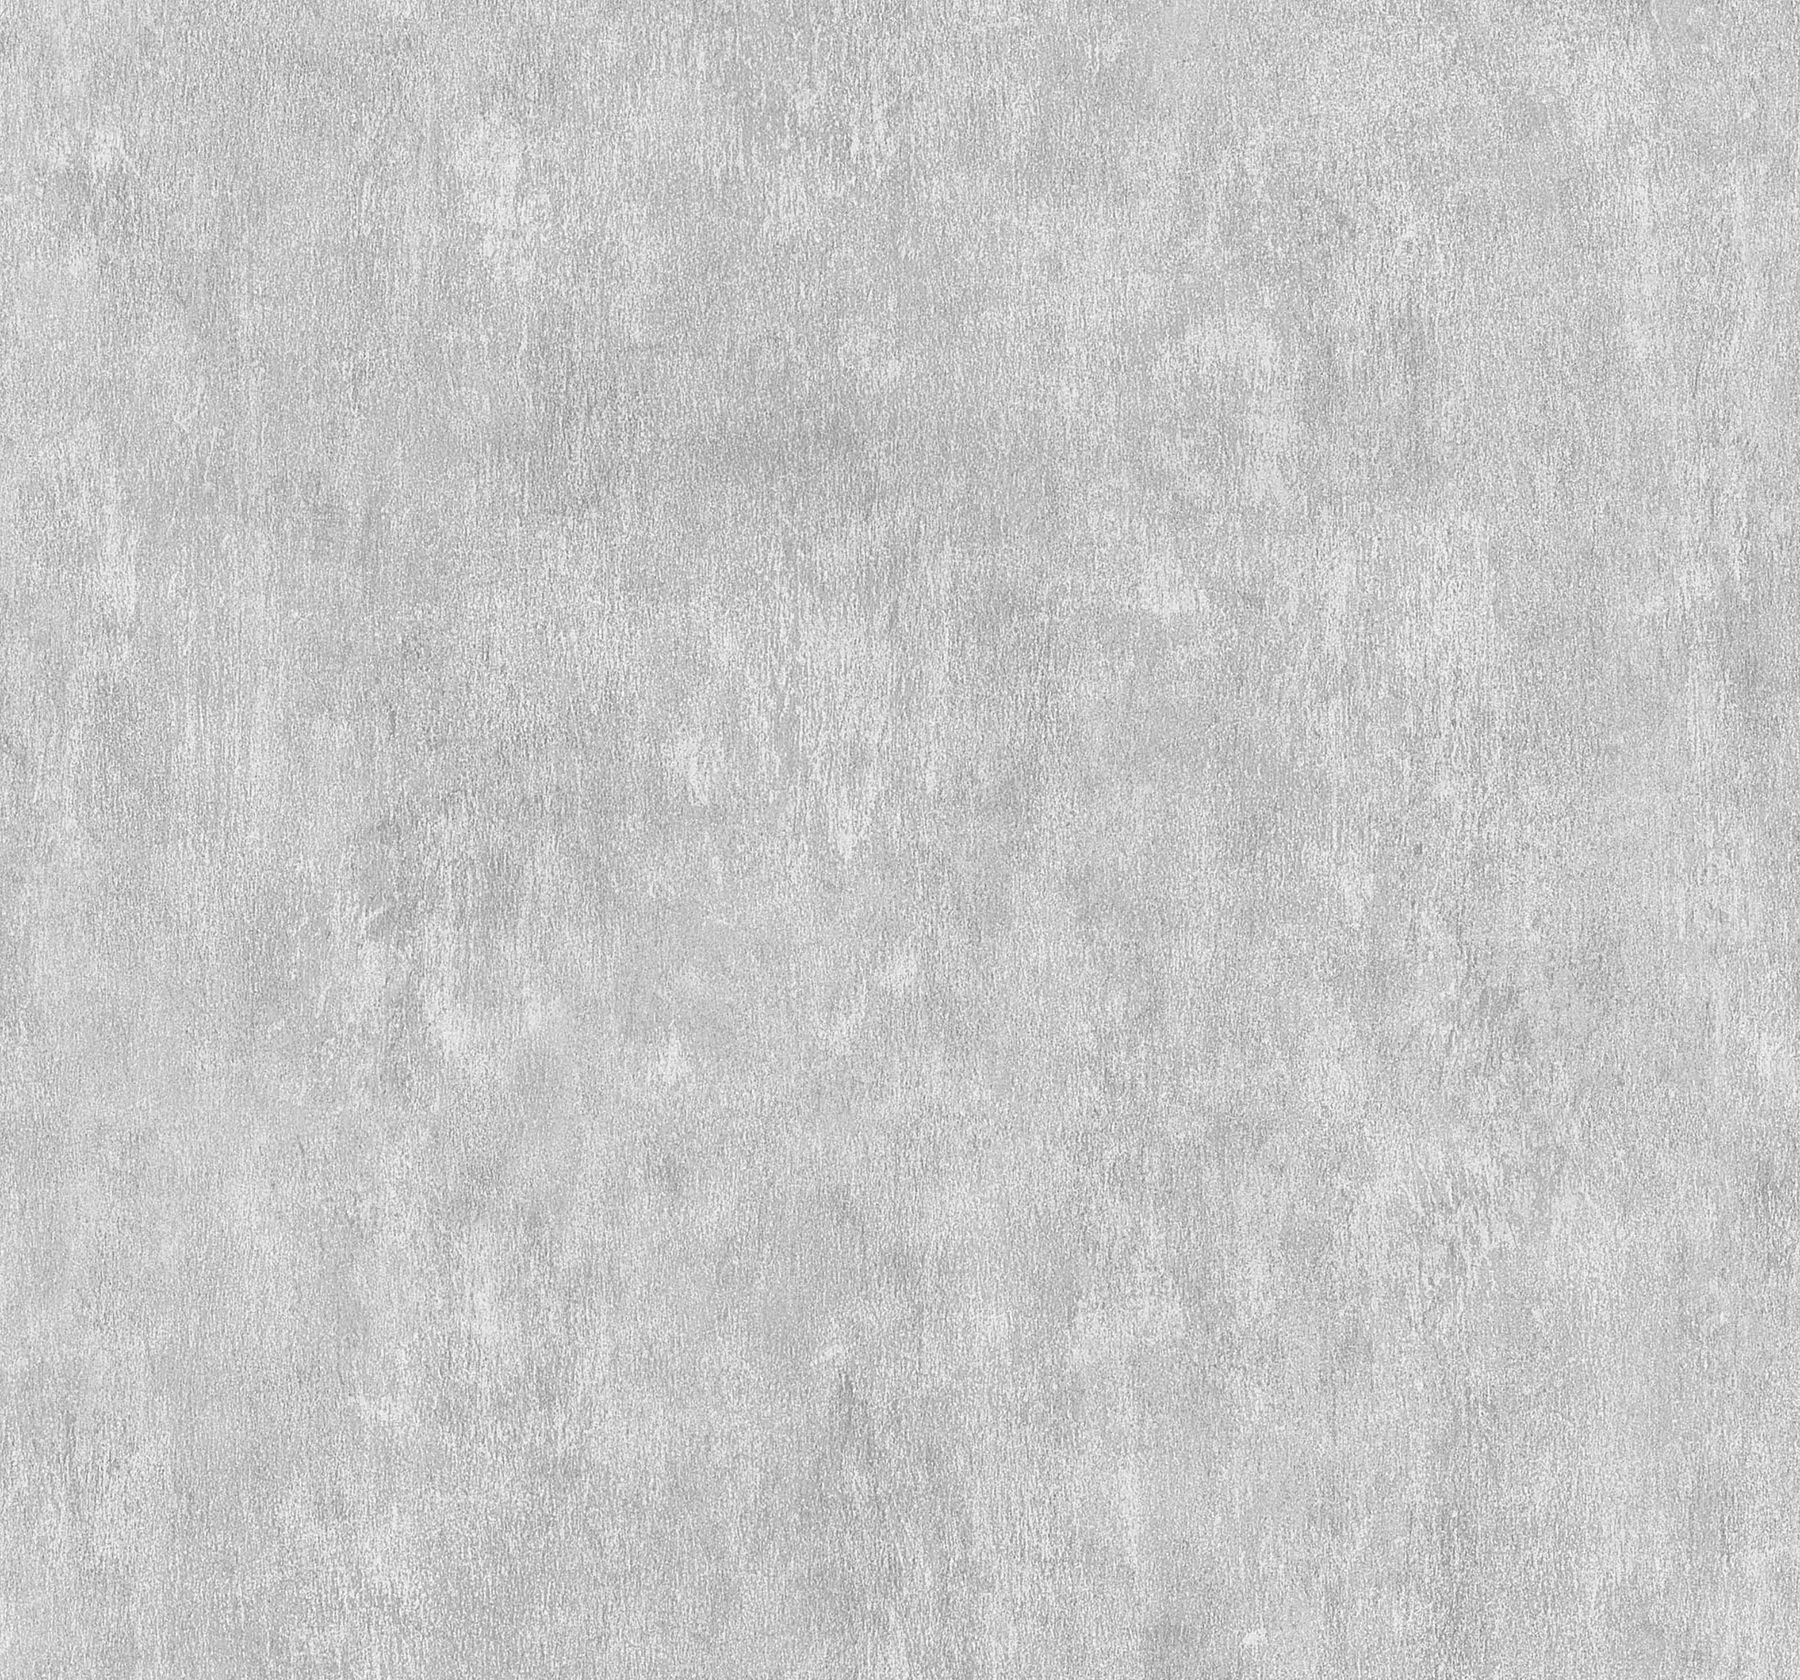 Picture of Brubeck Light Grey Distressed Texture Wallpaper